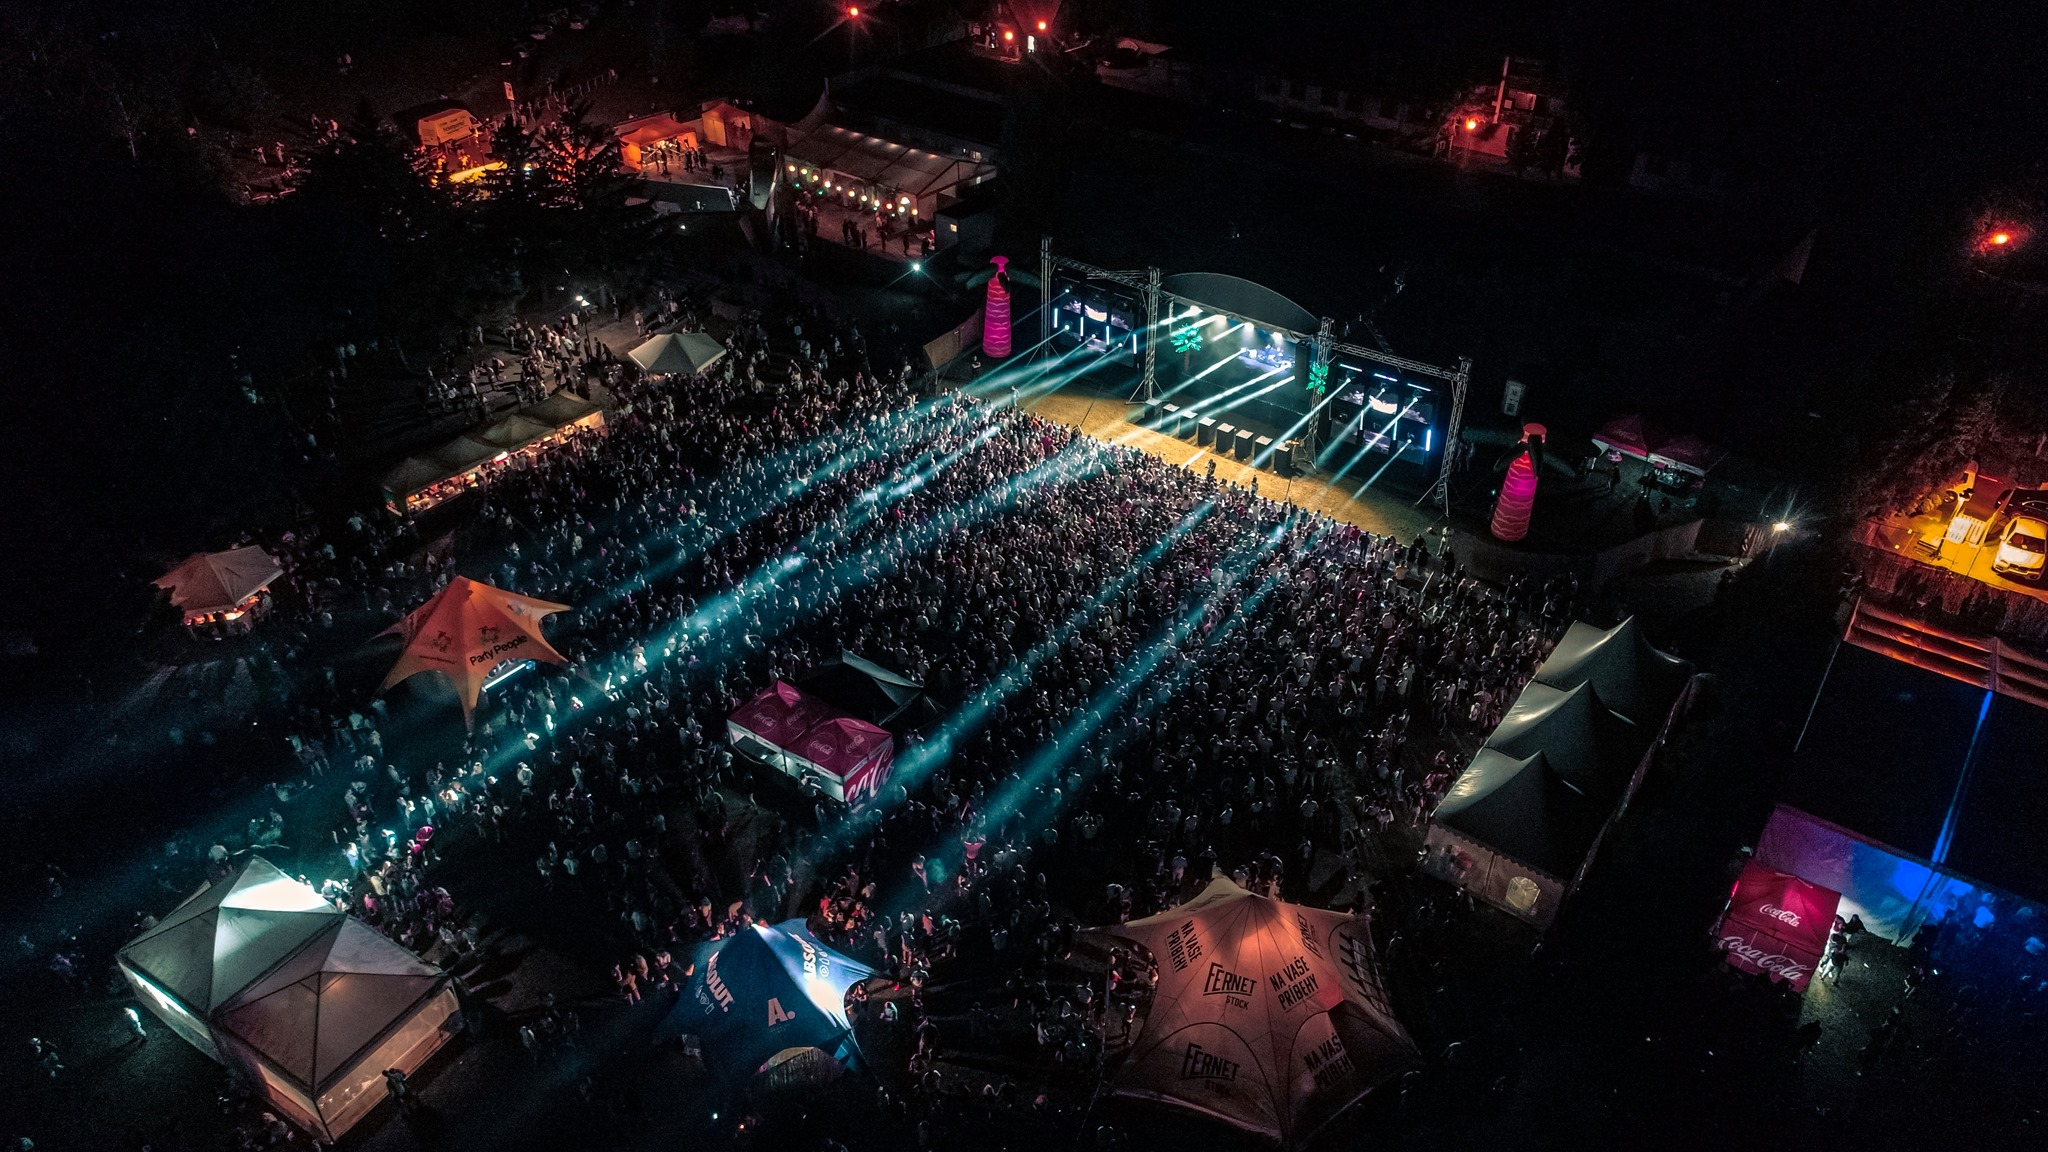 IBIZA PARTY 2020 open air Edison Summer Park - Bratislava